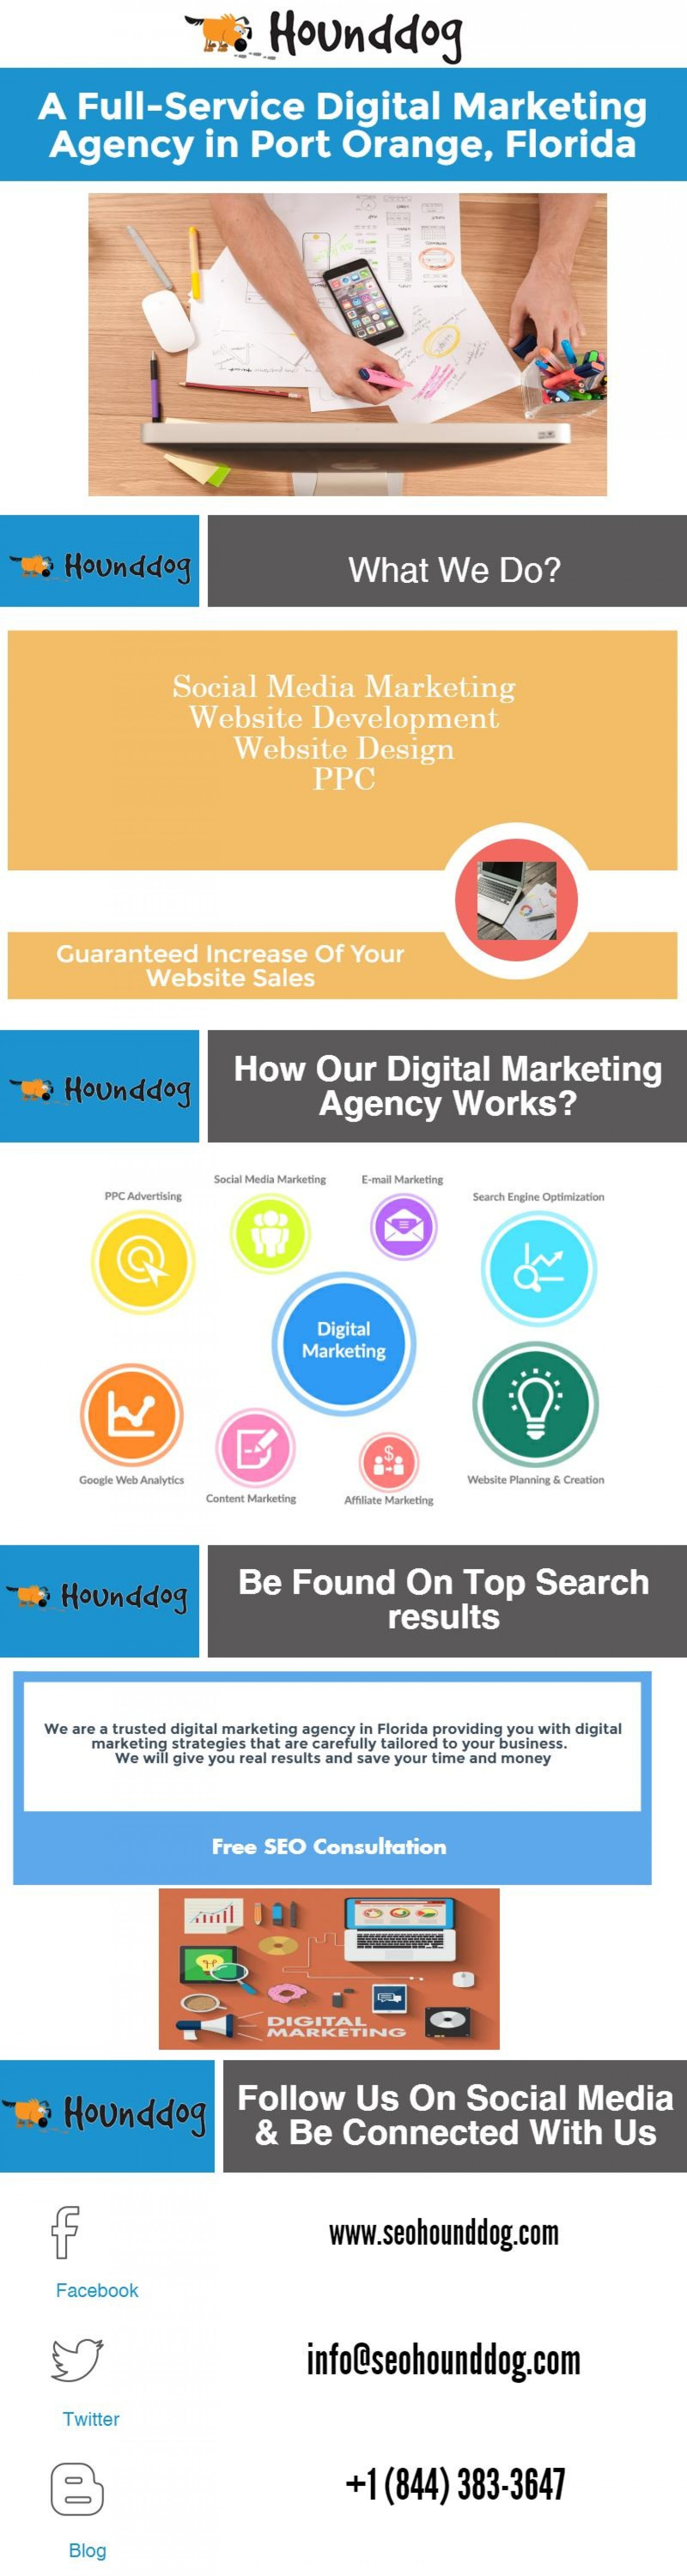 A Full-Service Digital Marketing Agency in Port Orange, Florida Infographic